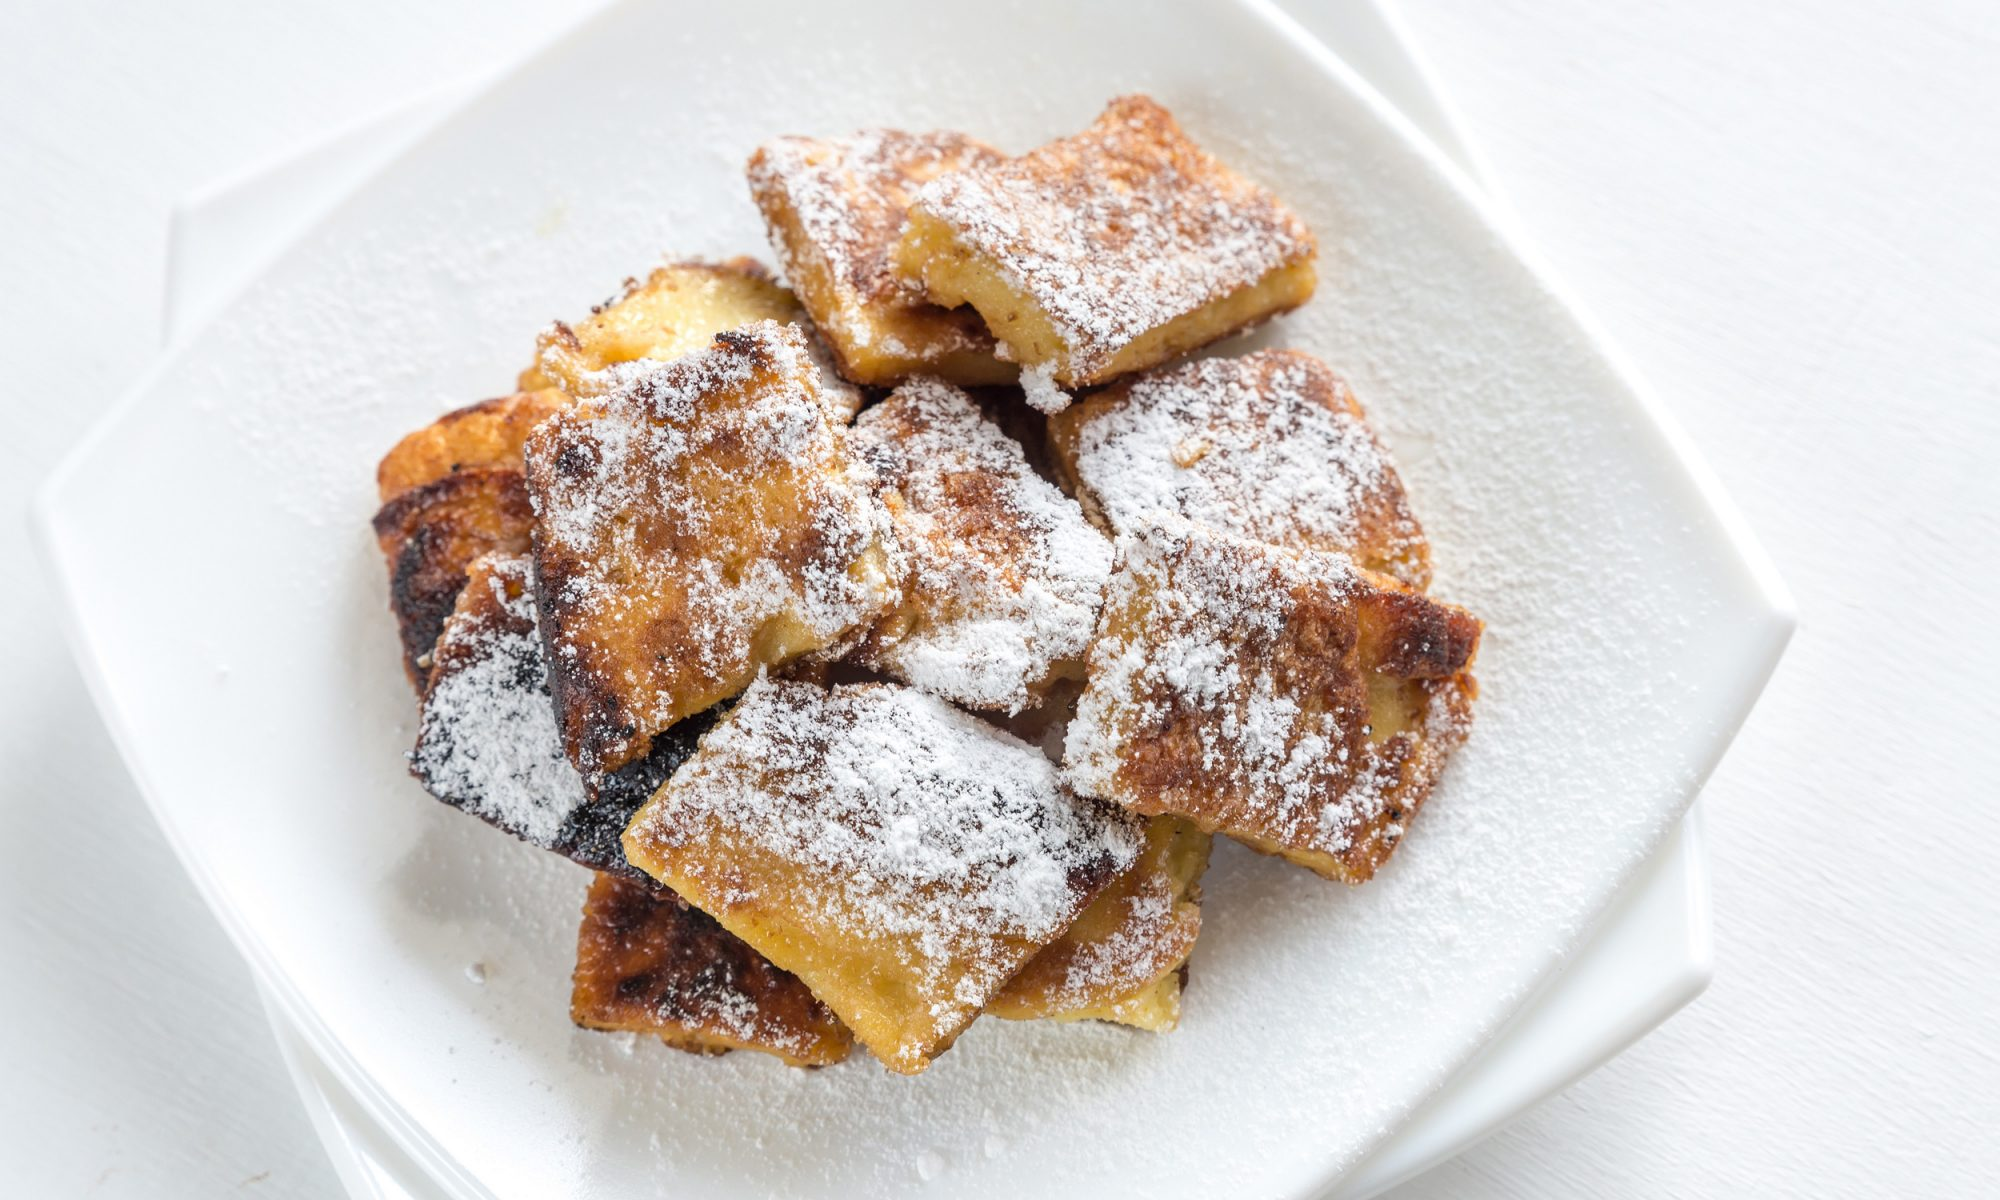 EC: Sheet Tray Pancakes Exist and Are Way Too Easy to Make